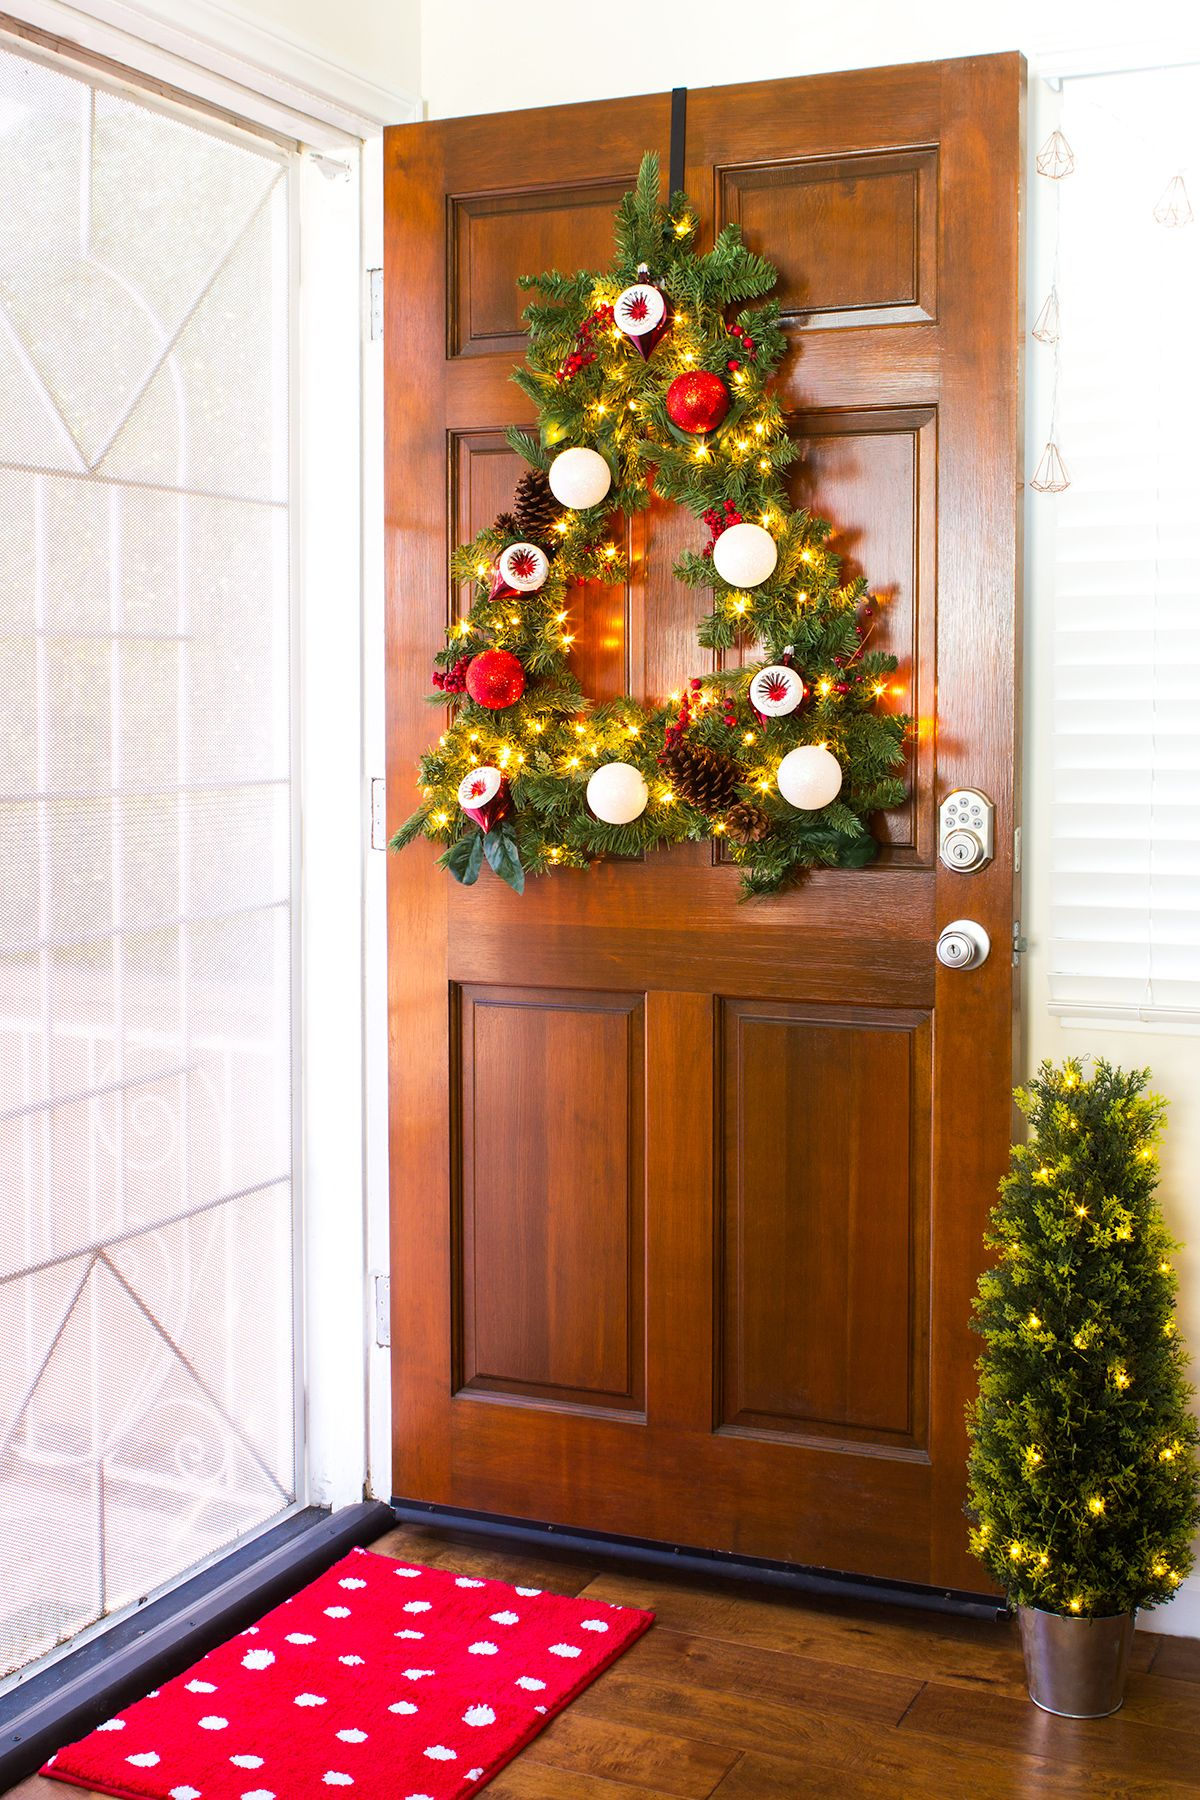 Christmas Tree Shaped Wreath For Your Front Door Sarahhearts Christmas Front Doors Christmas Door Decorations Front Door Decor